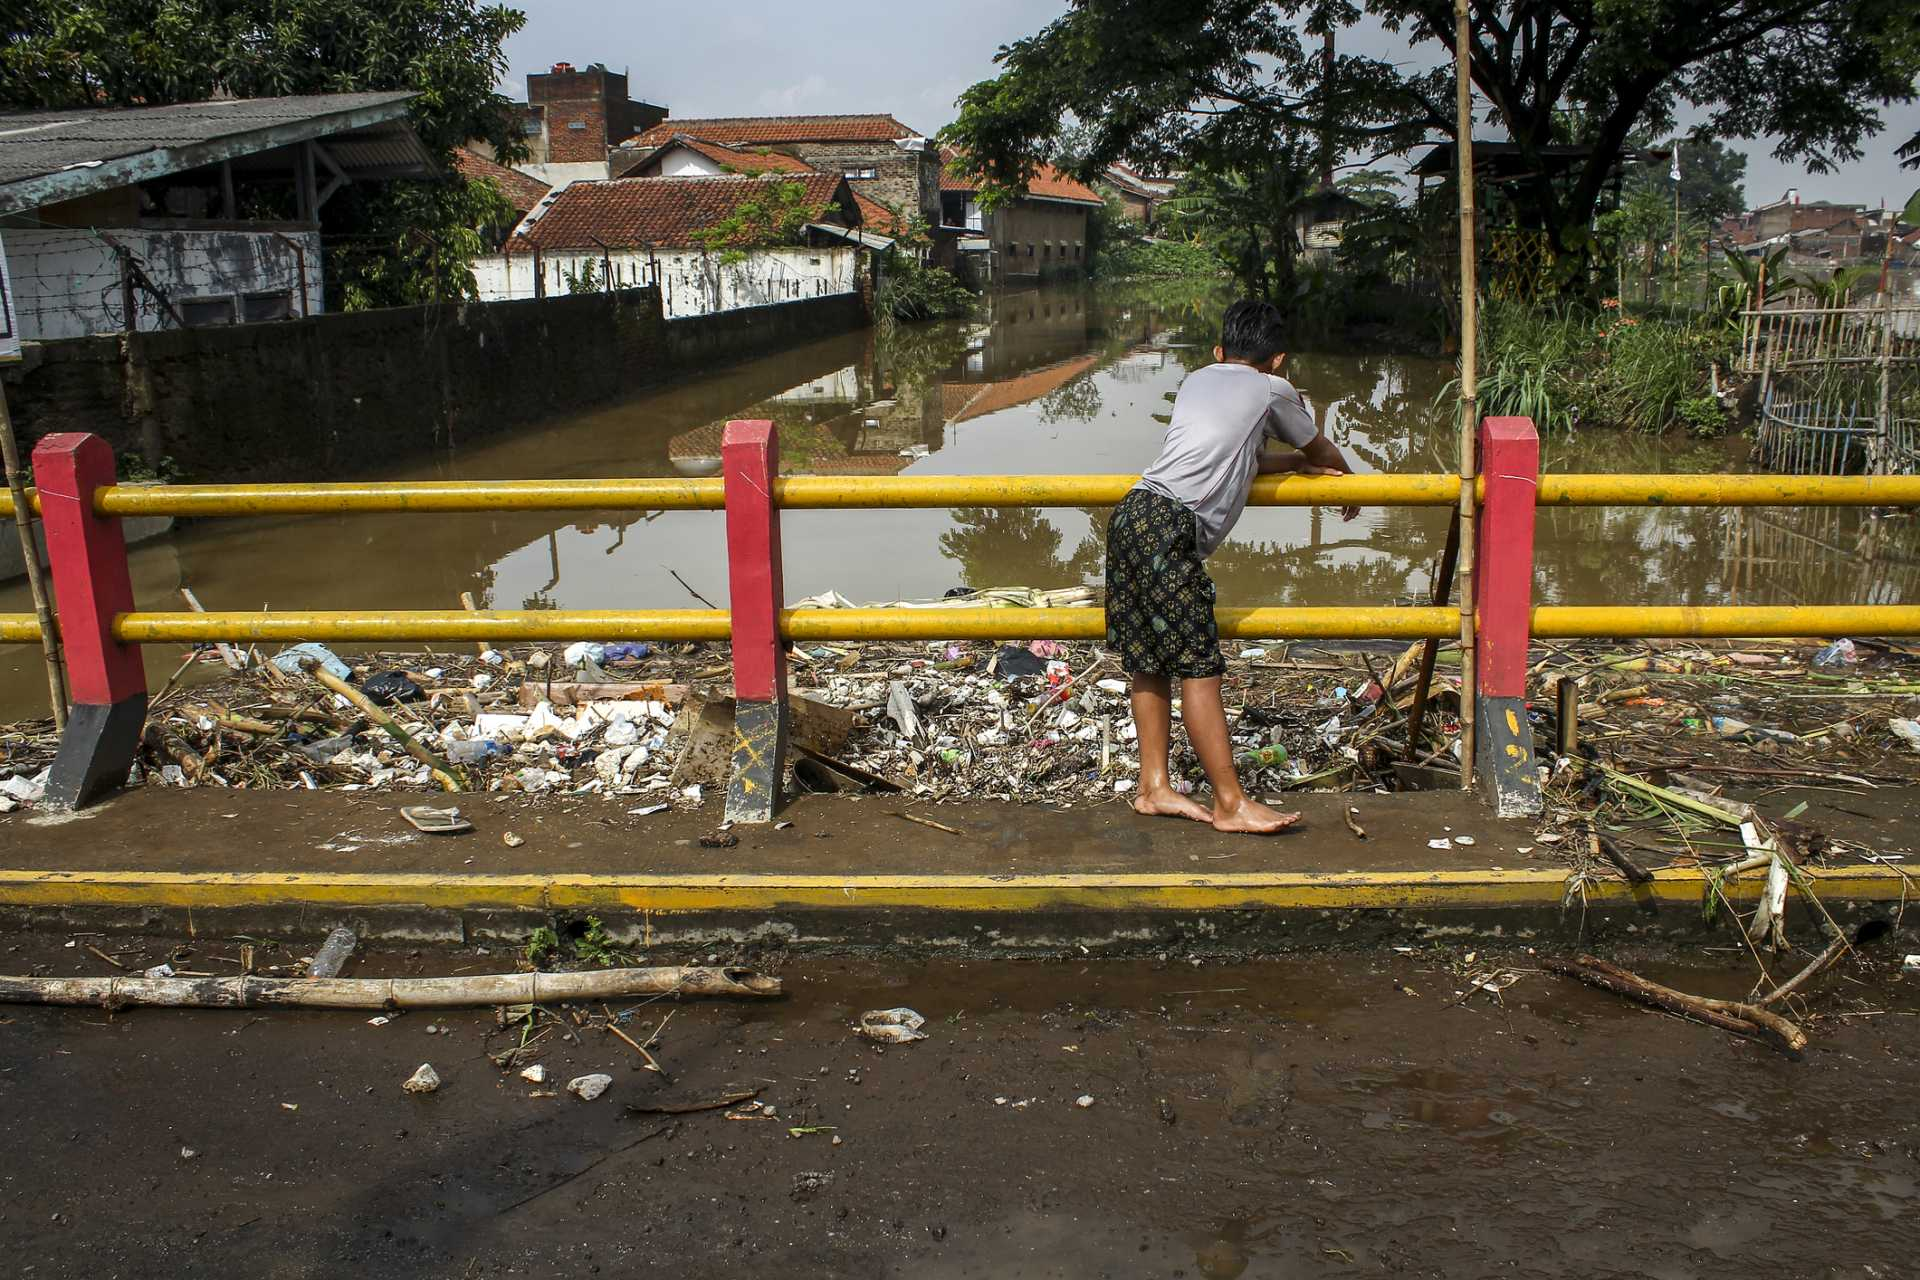 Citarum River, Indonesia -featured in Stacey Dooley's BBC documentary, Fashion's Dirty Secret. The environmental destruction of the Citarum River is attributed to local clothing factories which are linked to large high street fashion chains in the UK.